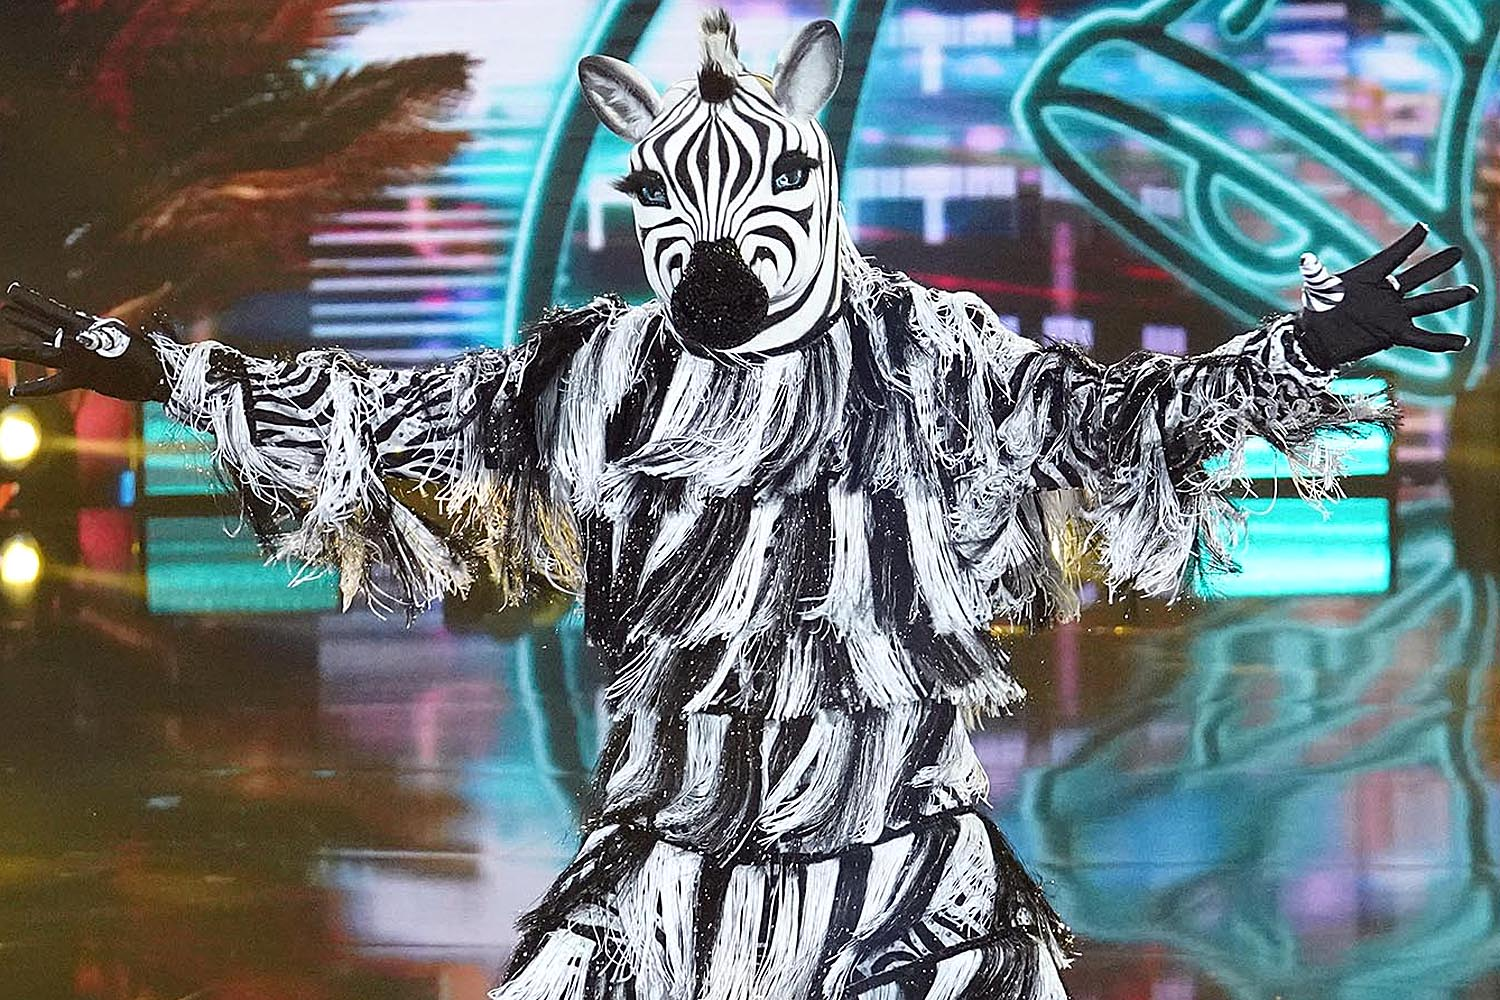 THE MASKED DANCER: Zebra